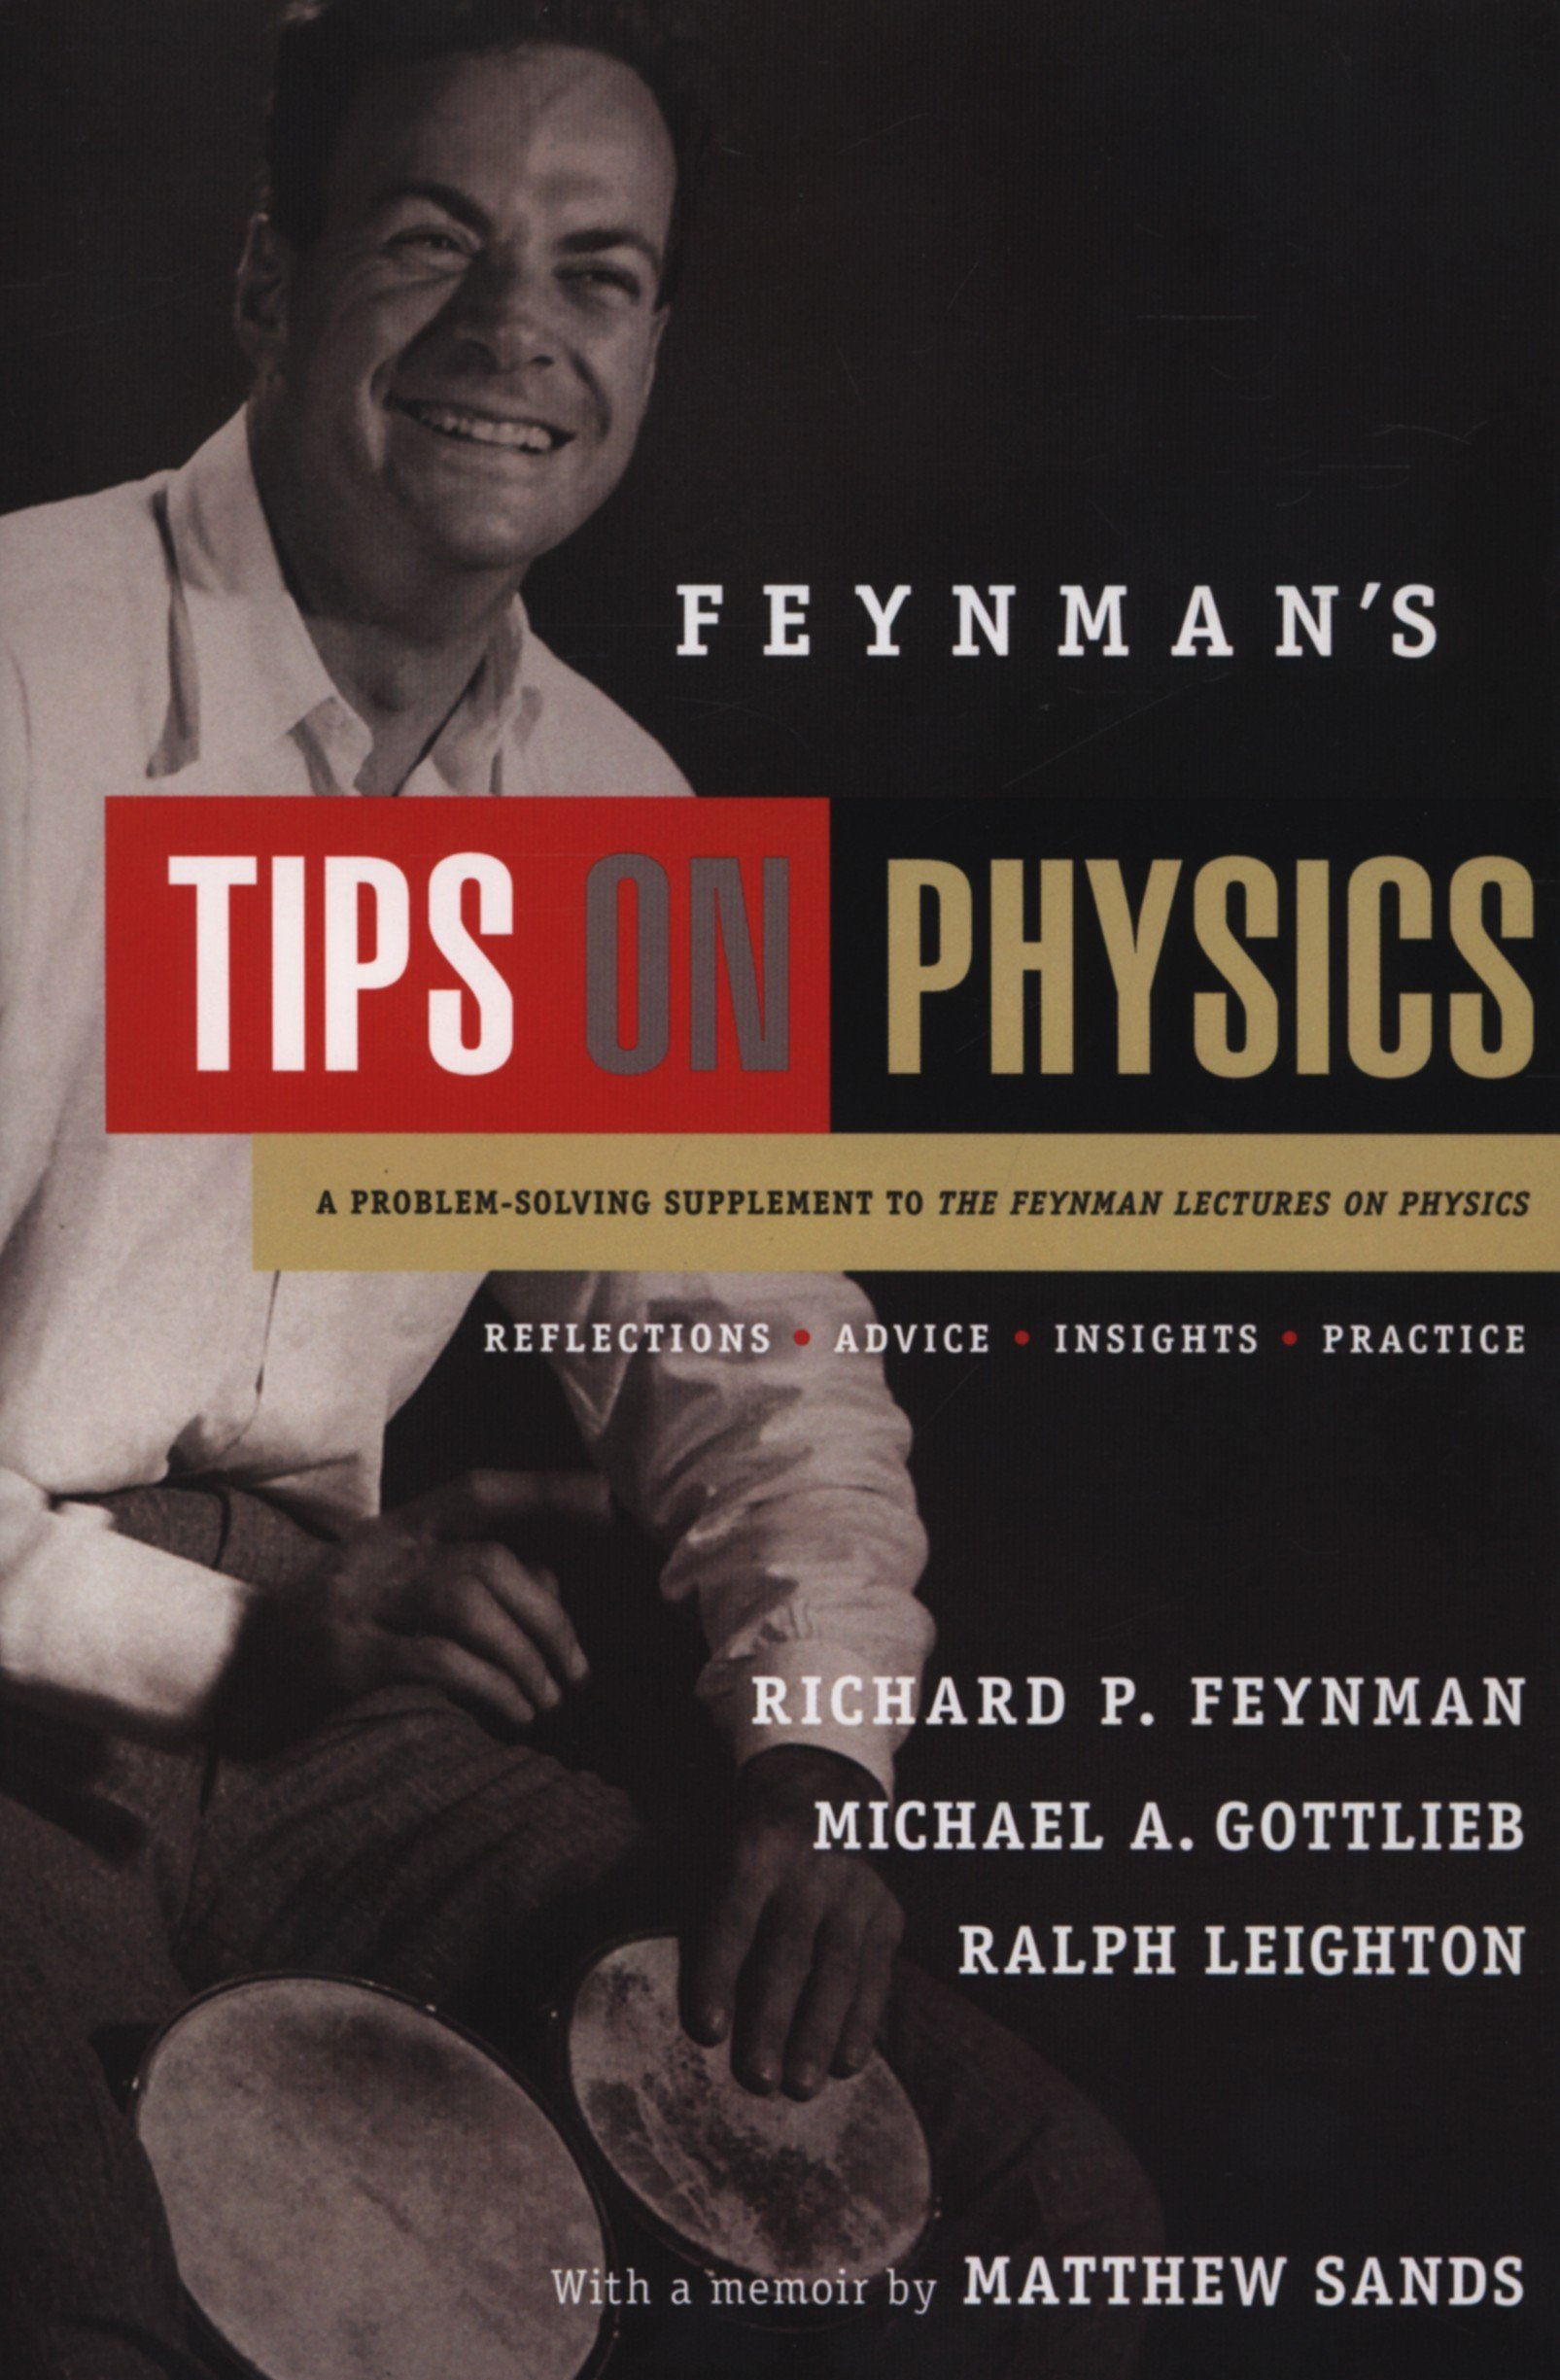 feynman s tips on physics reflections advice insights practice feynman s tips on physics reflections advice insights practice amazon co uk michael gottlieb richard feynman ralph leighton 9780465027972 books